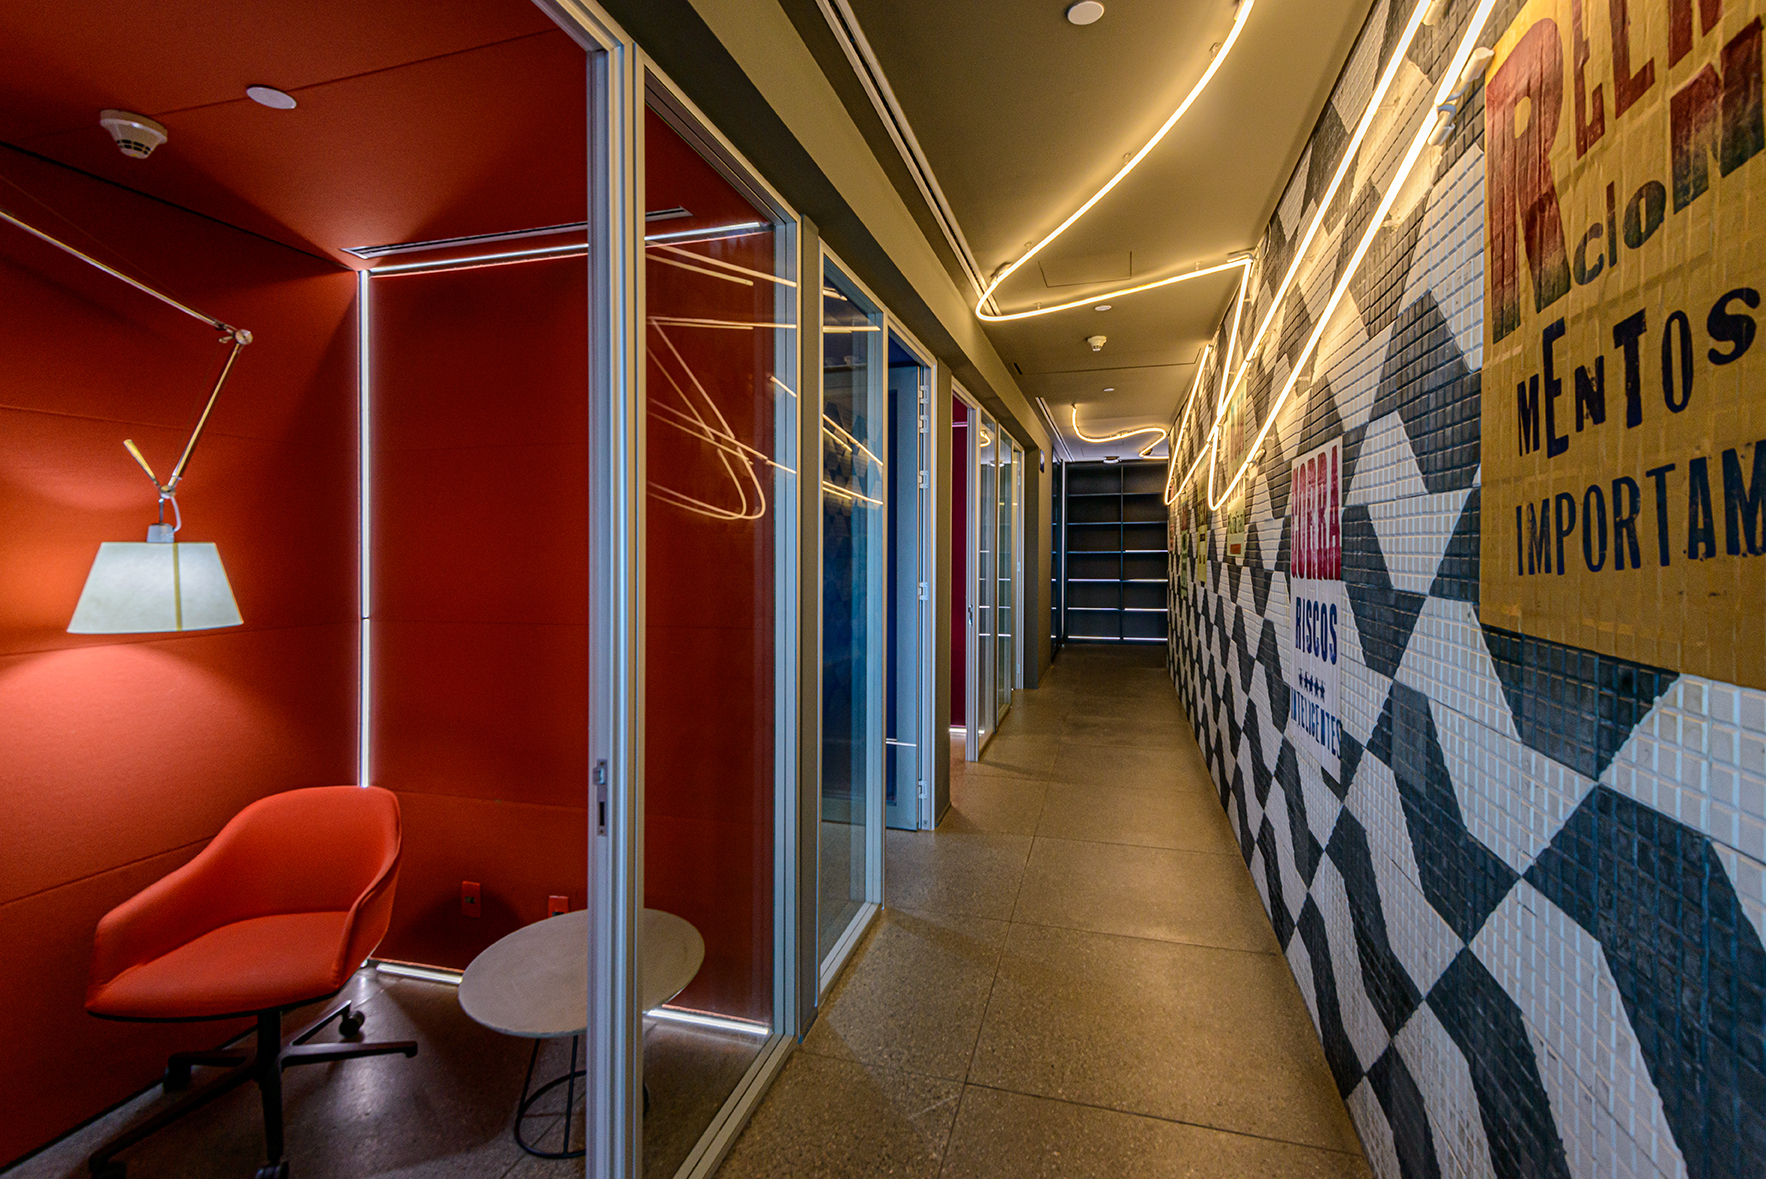 Breakout space in a modern office building